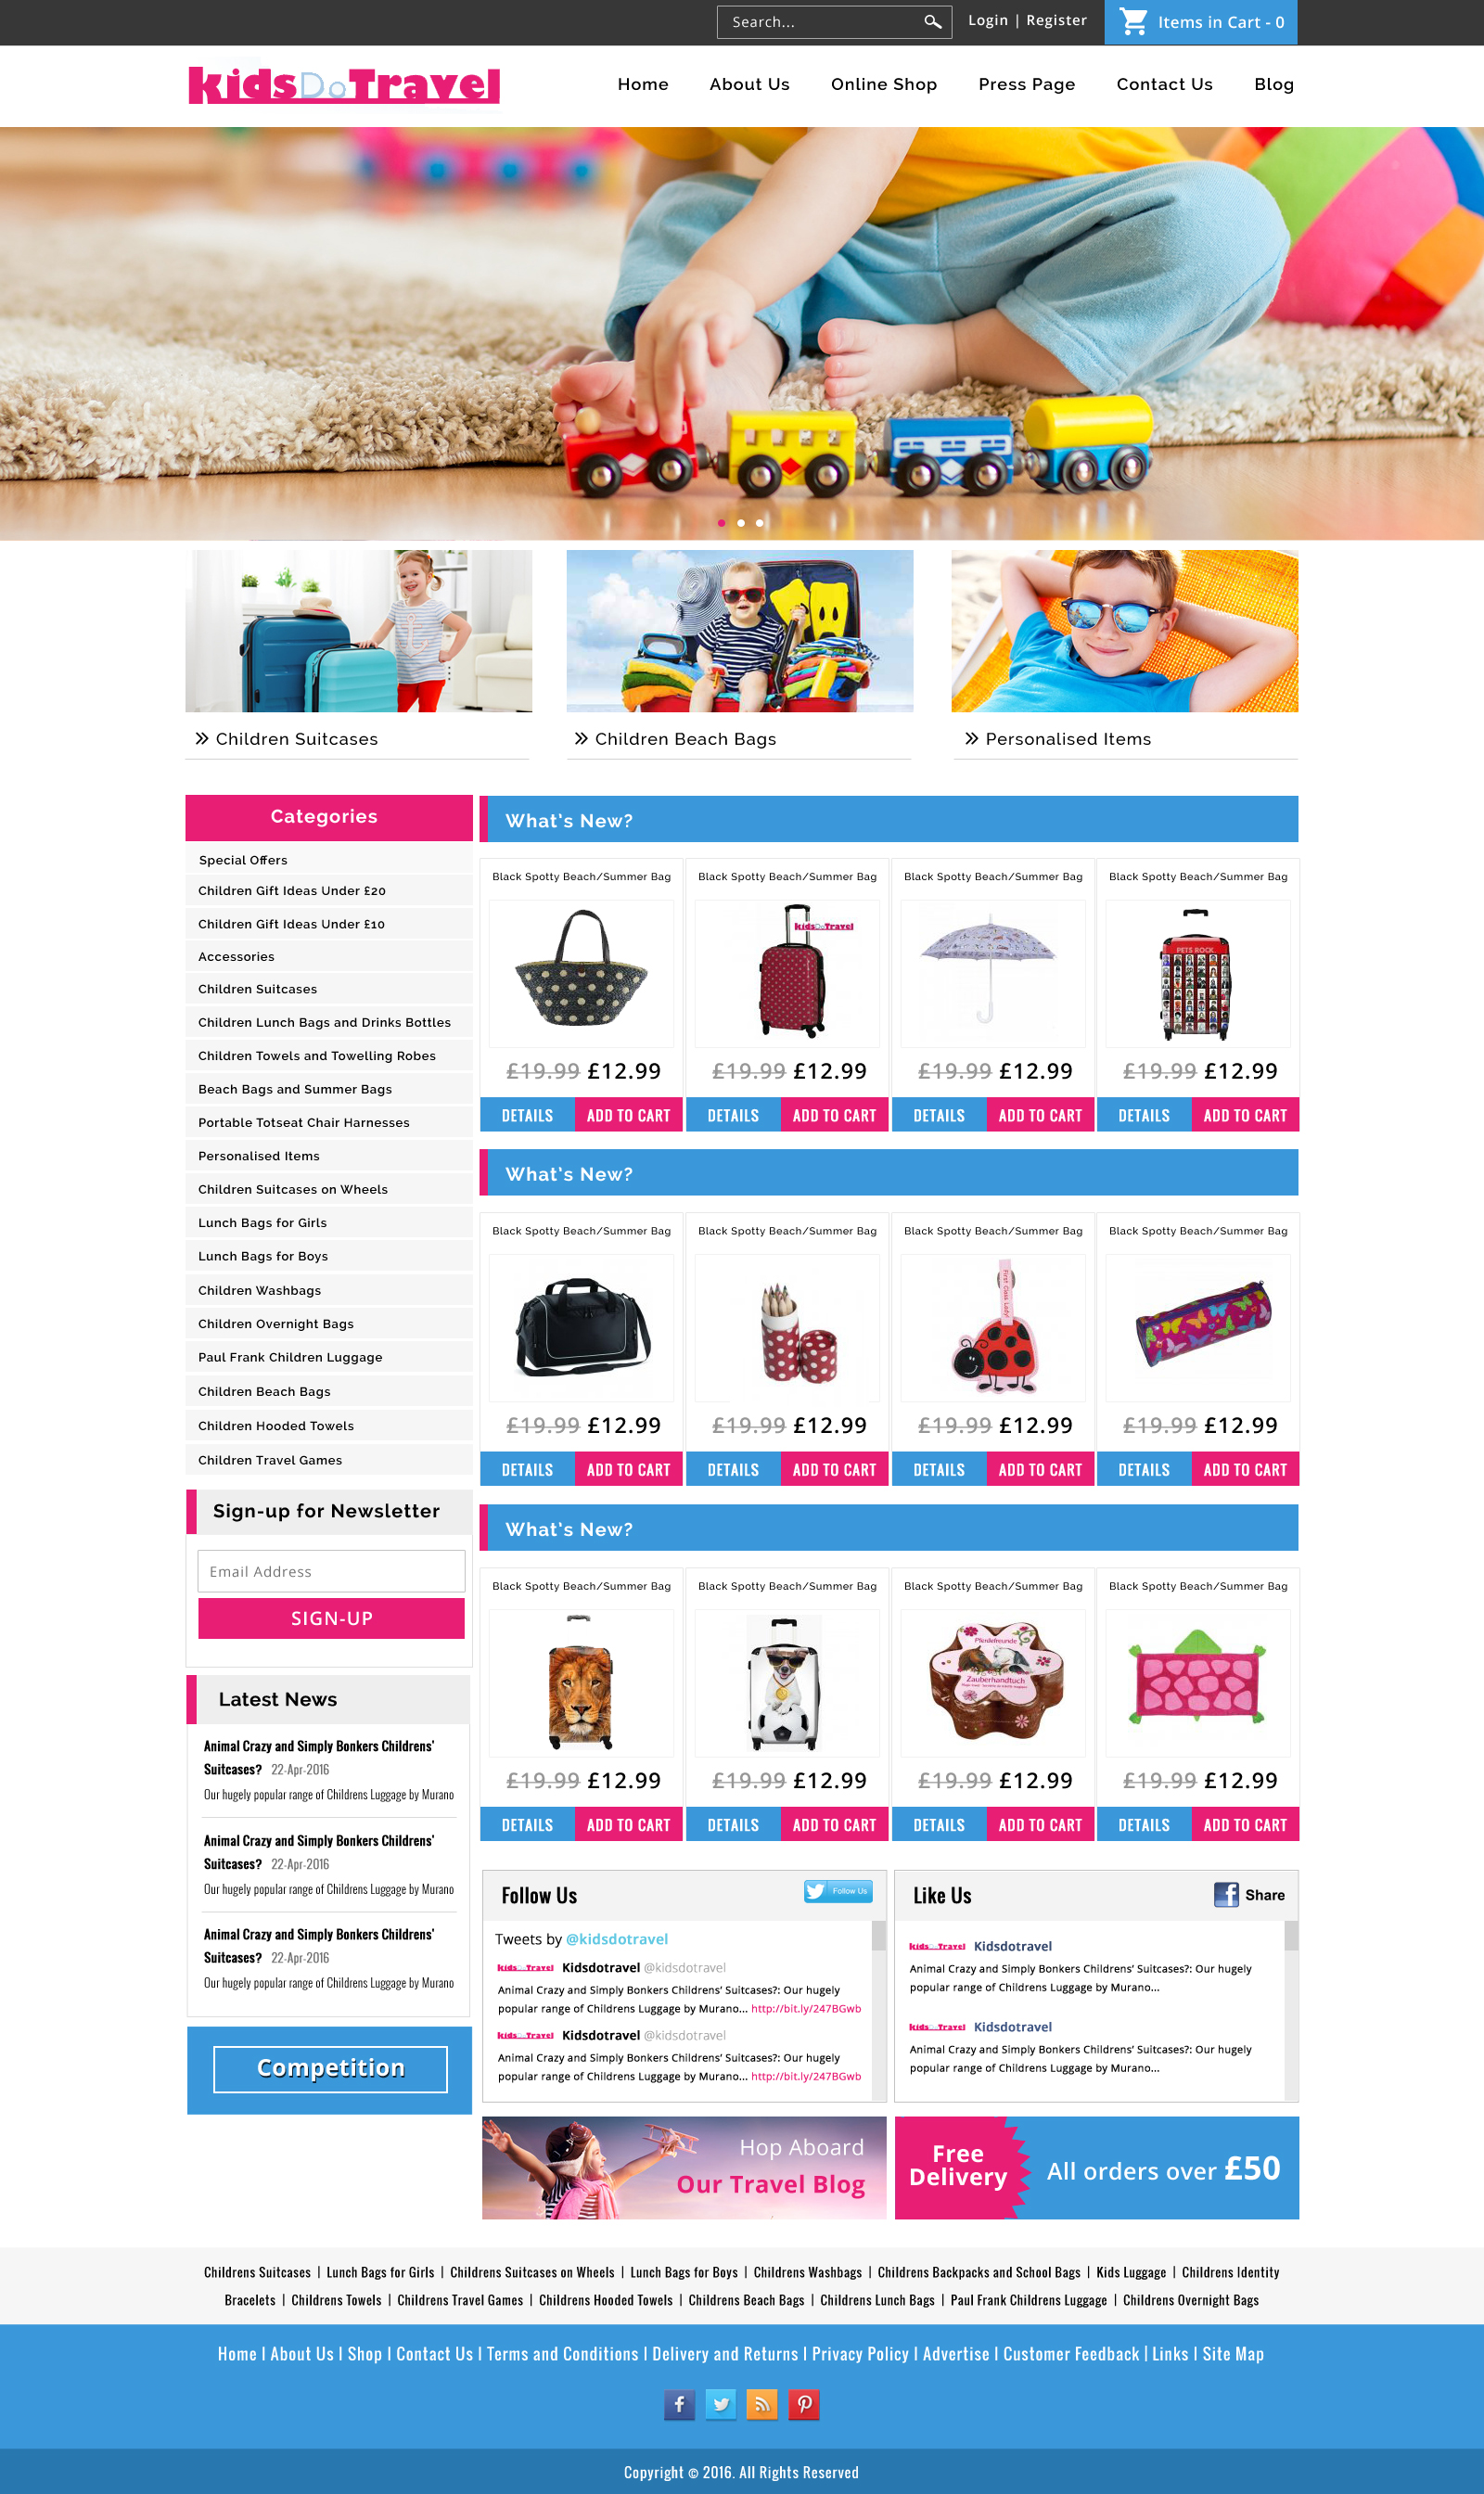 ecom, ecommerce website, ecom web design, ecommerce web design, online shop